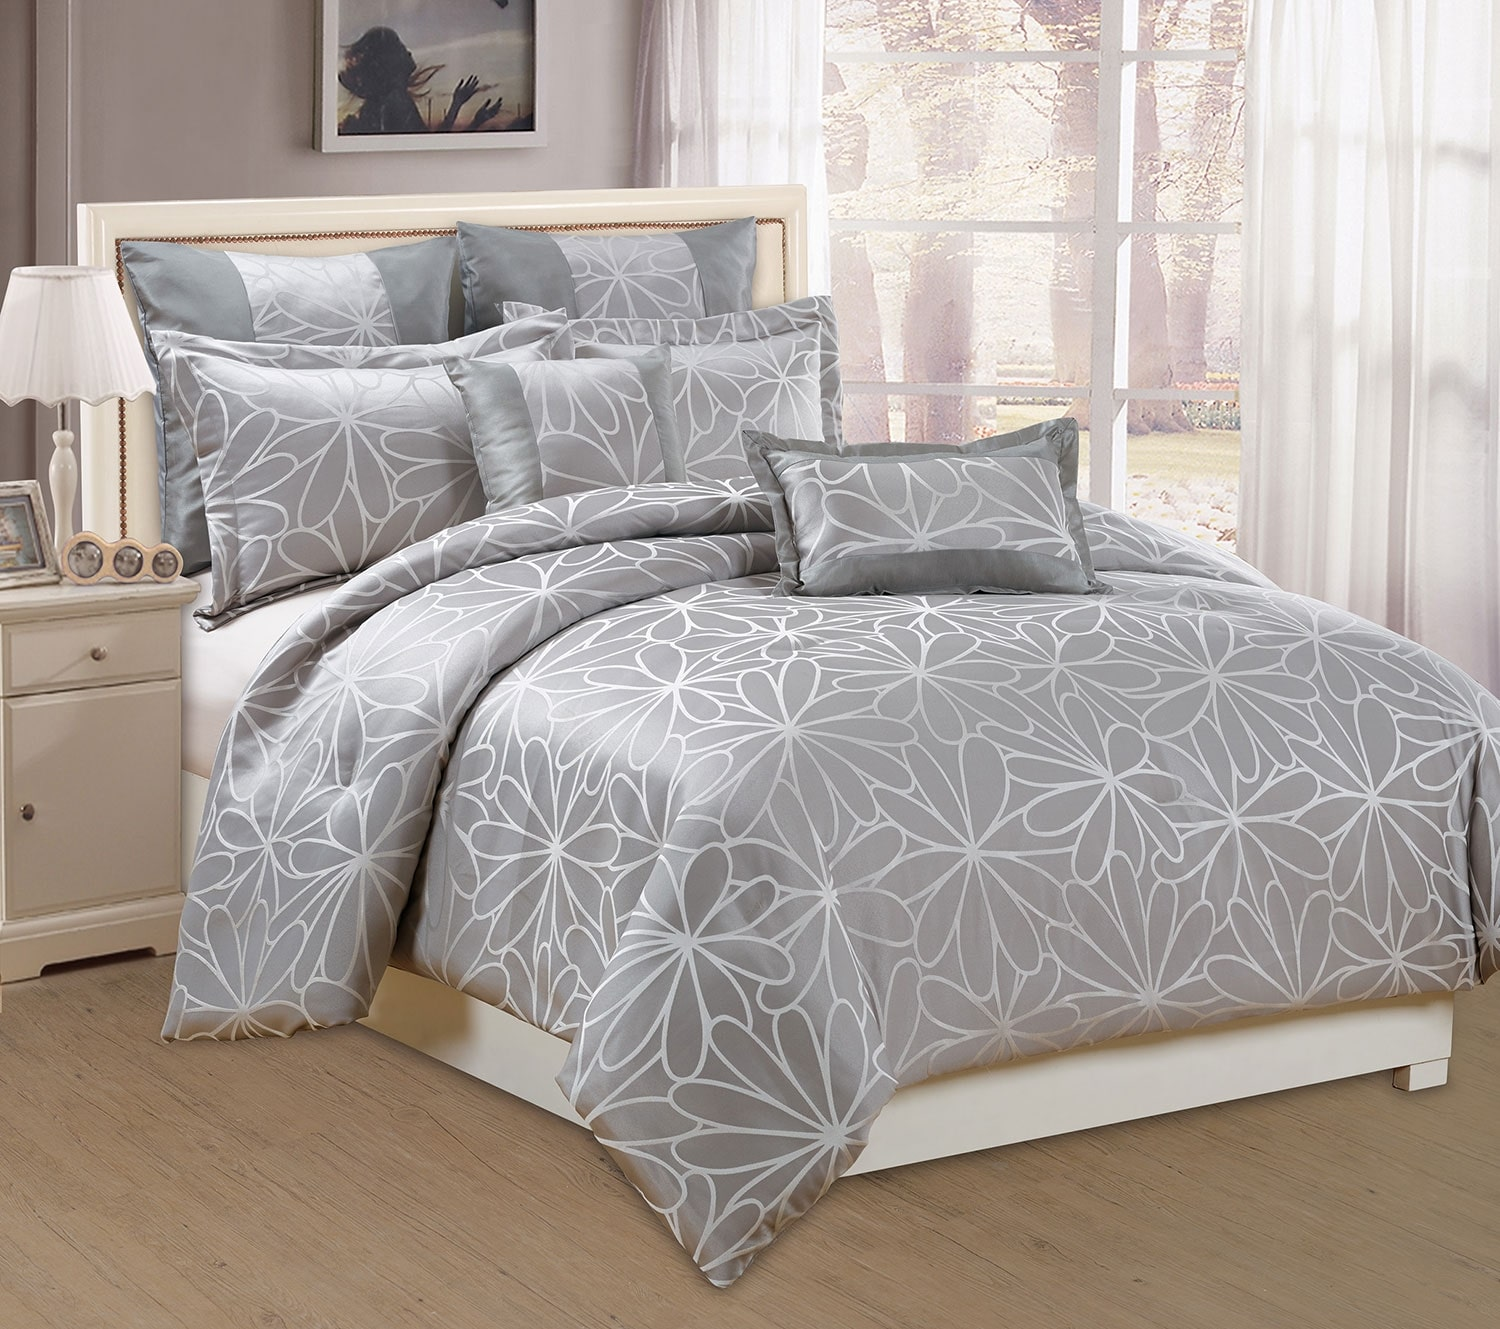 Daisy 7-Piece Queen Comforter Set